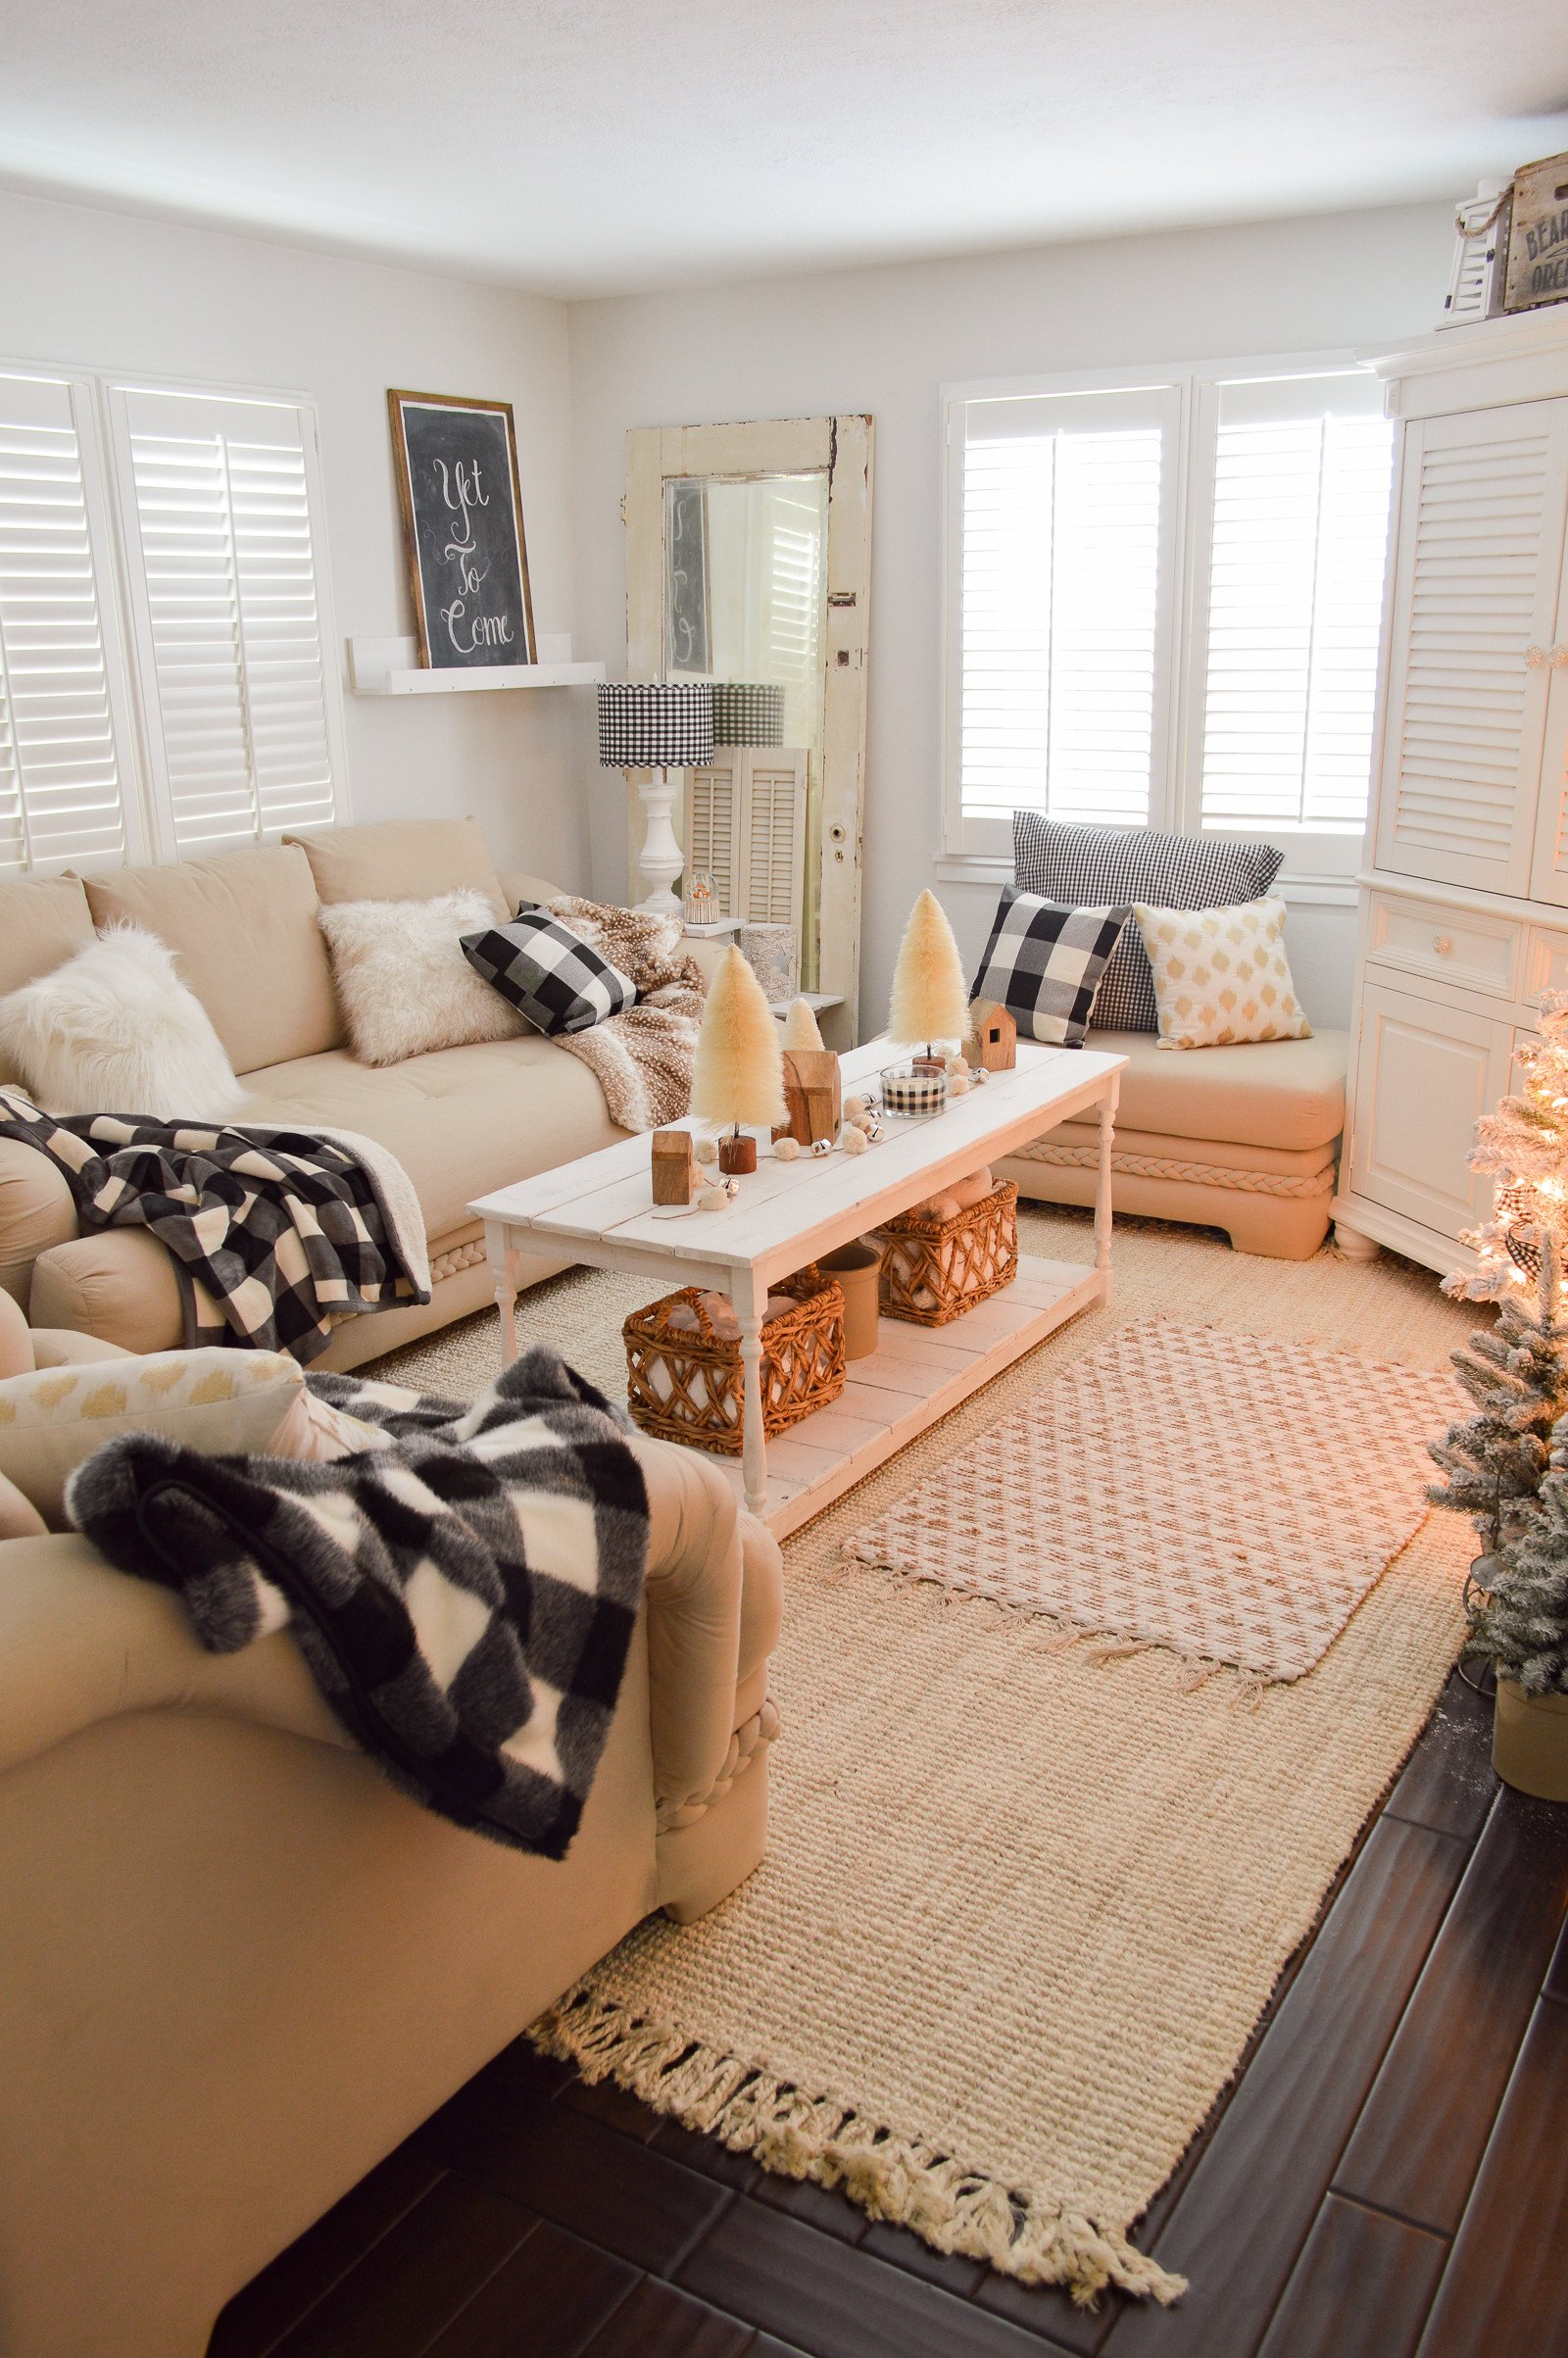 Cottage Living Room Ideas Lovely Cozy Cottage Winter Living Room Decorating Ideas Fox Hollow Cottage